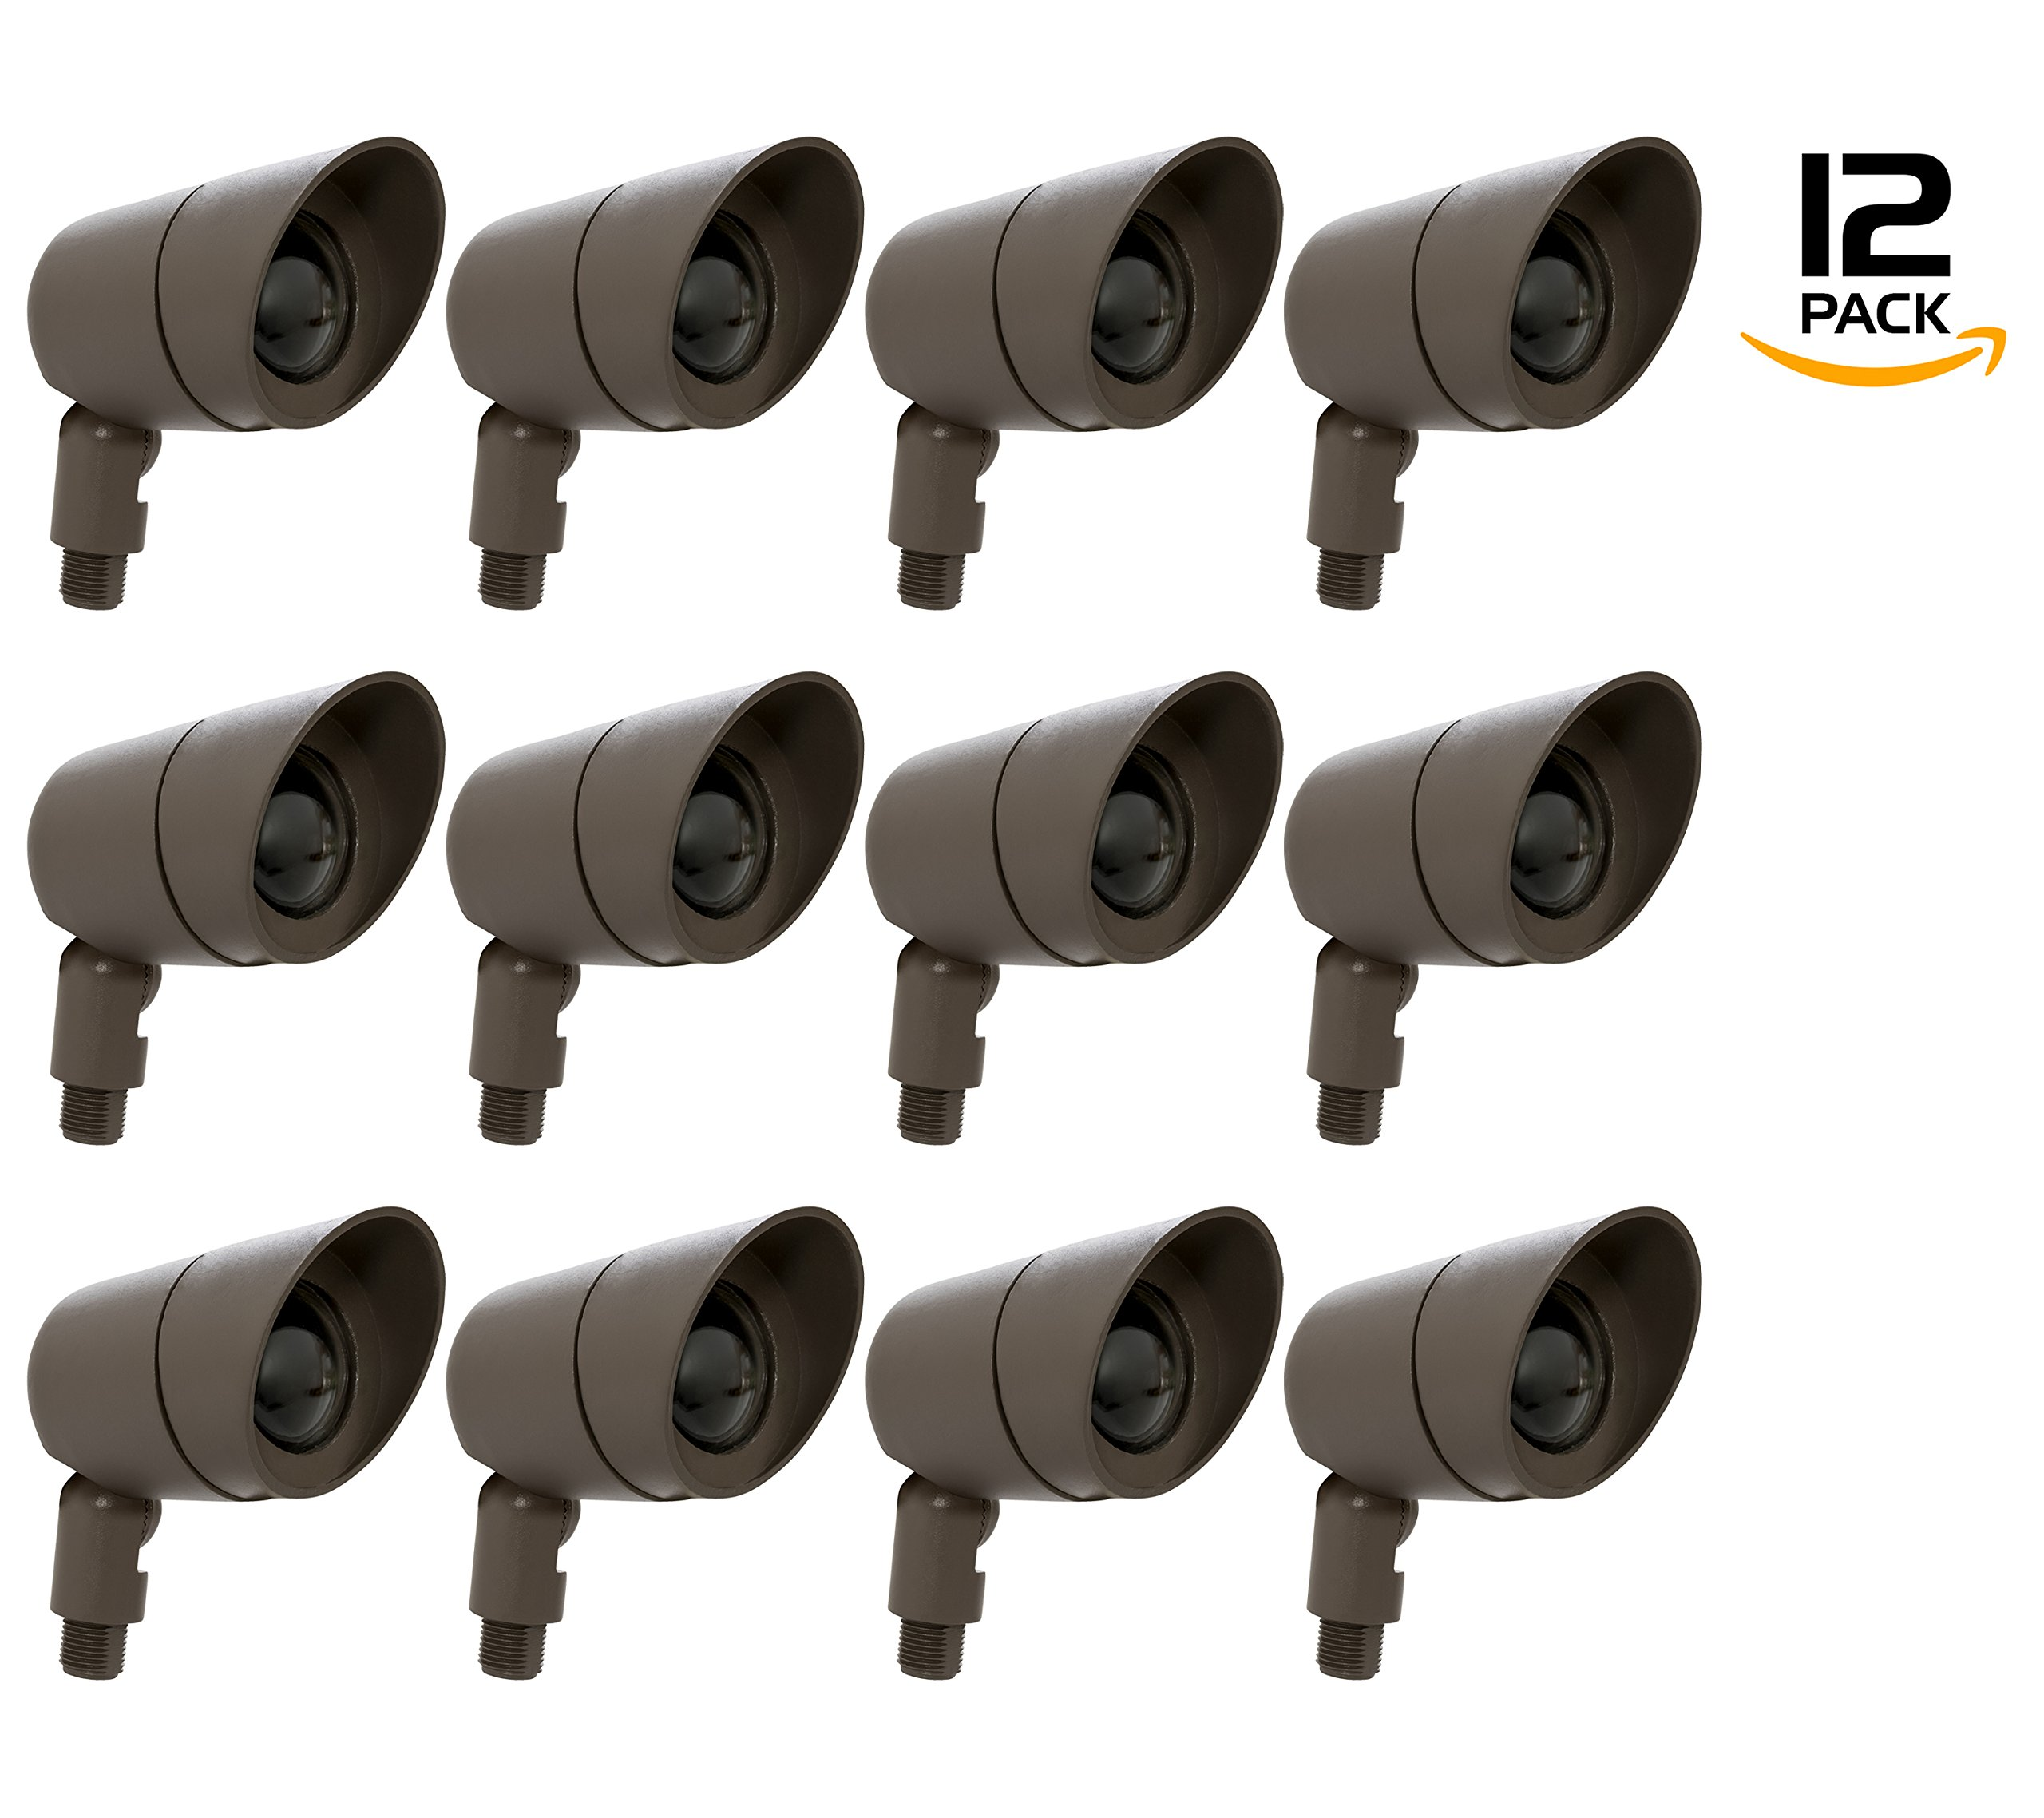 Westgate Lighting LED Directional Landscape Die-Cast Housing - IP67 and IP54 Level Rating-12V AC- 36 Degree Beam Angle- Convex Lens - 5 YR Warranty (12, Bronze)